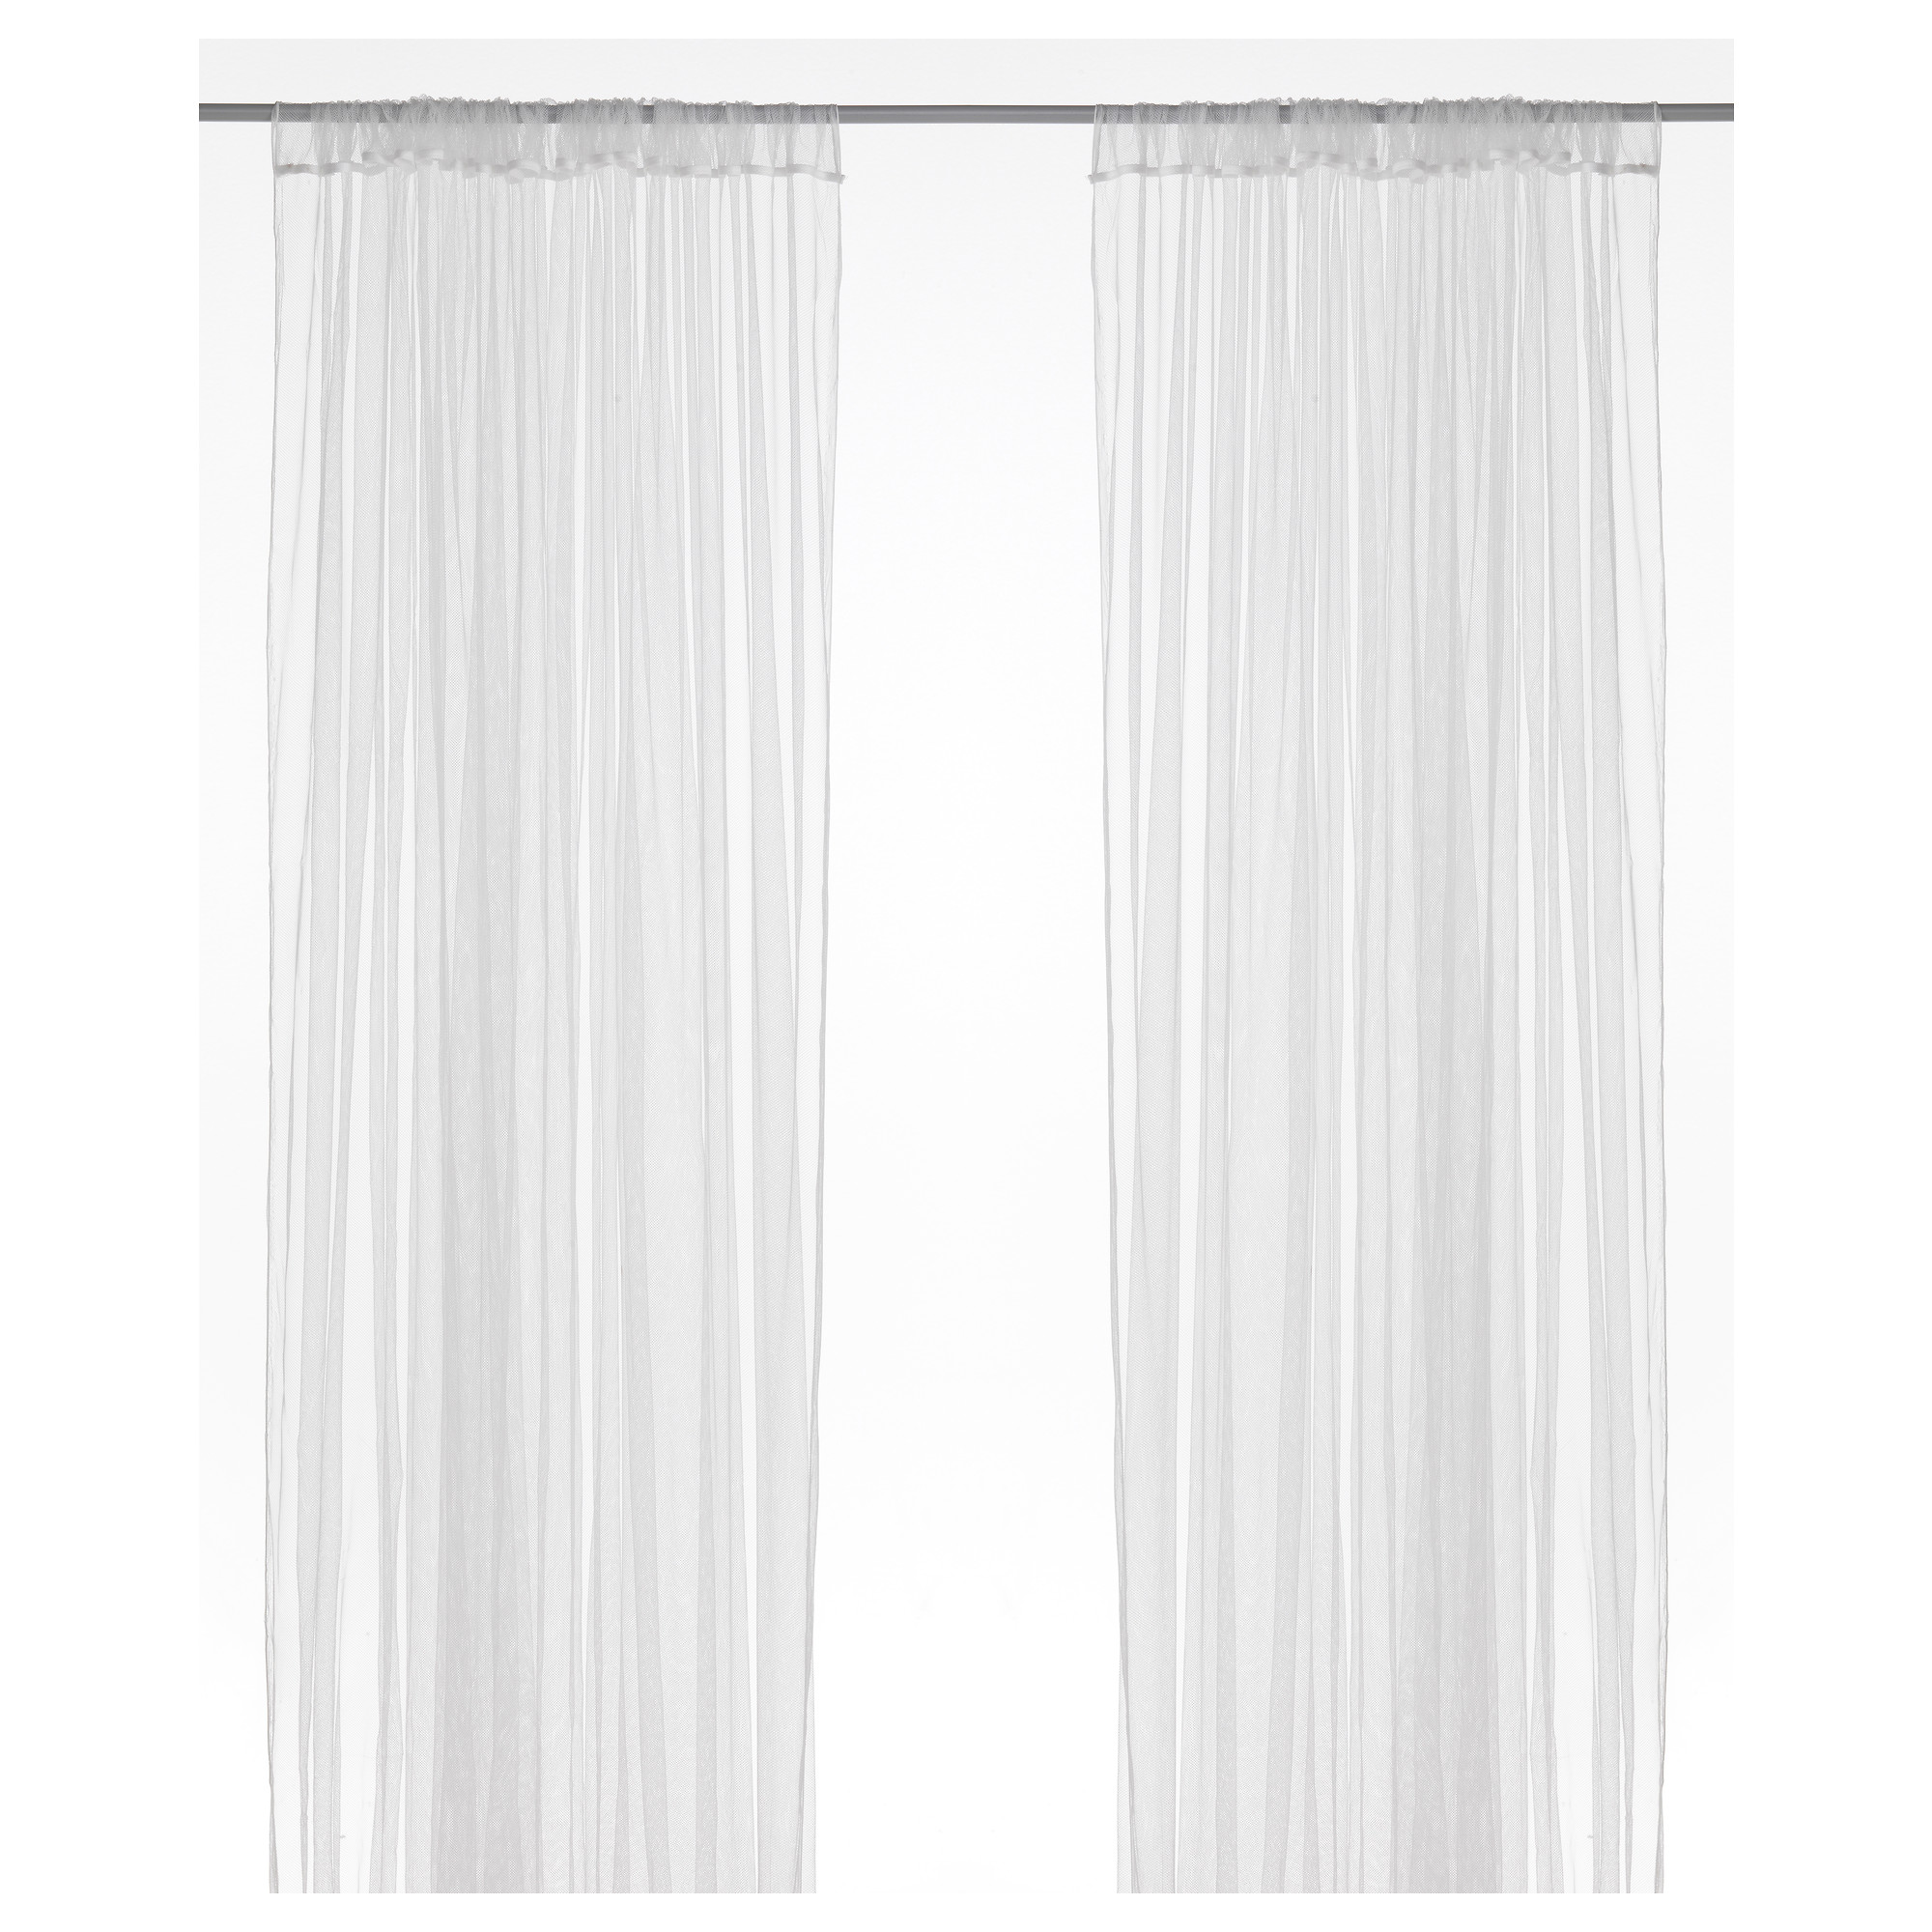 Sheer curtain texture - Sheer Curtain Texture 2